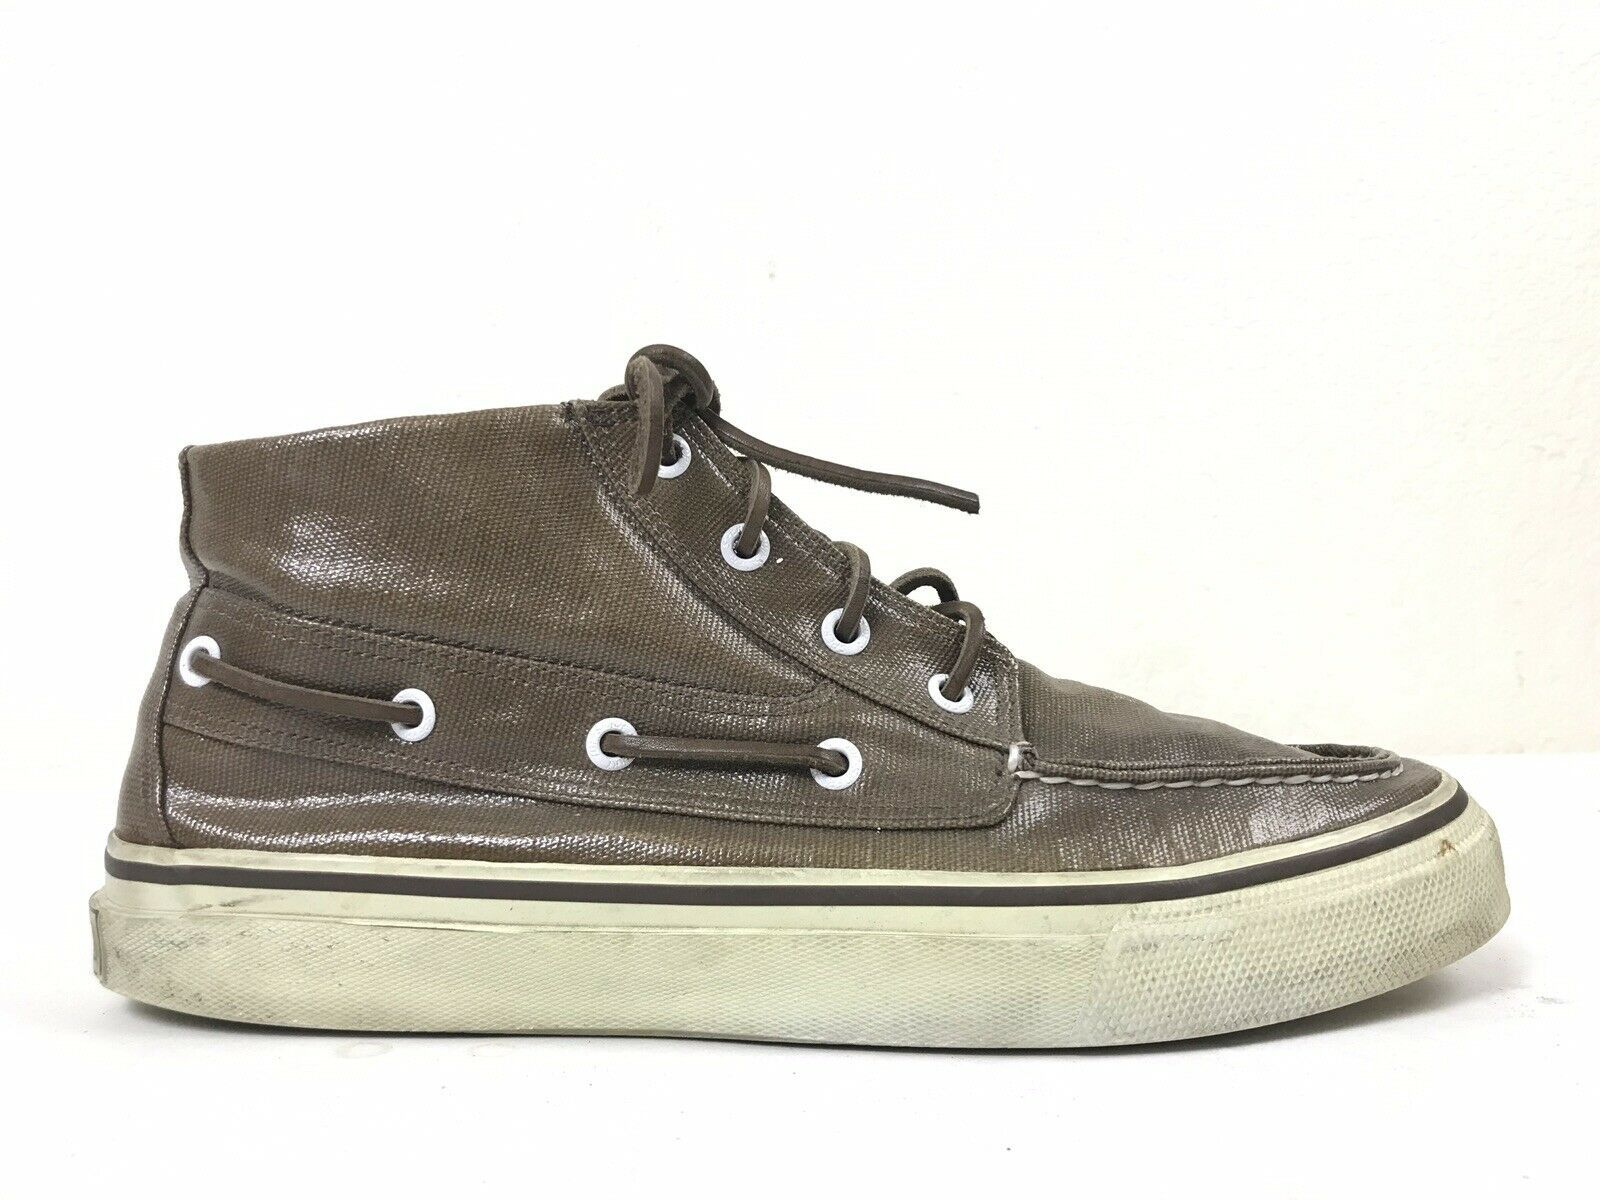 Sperry Top Sider Shiny Brown High Top Canvas Sneakers Shoes Men's Size 10